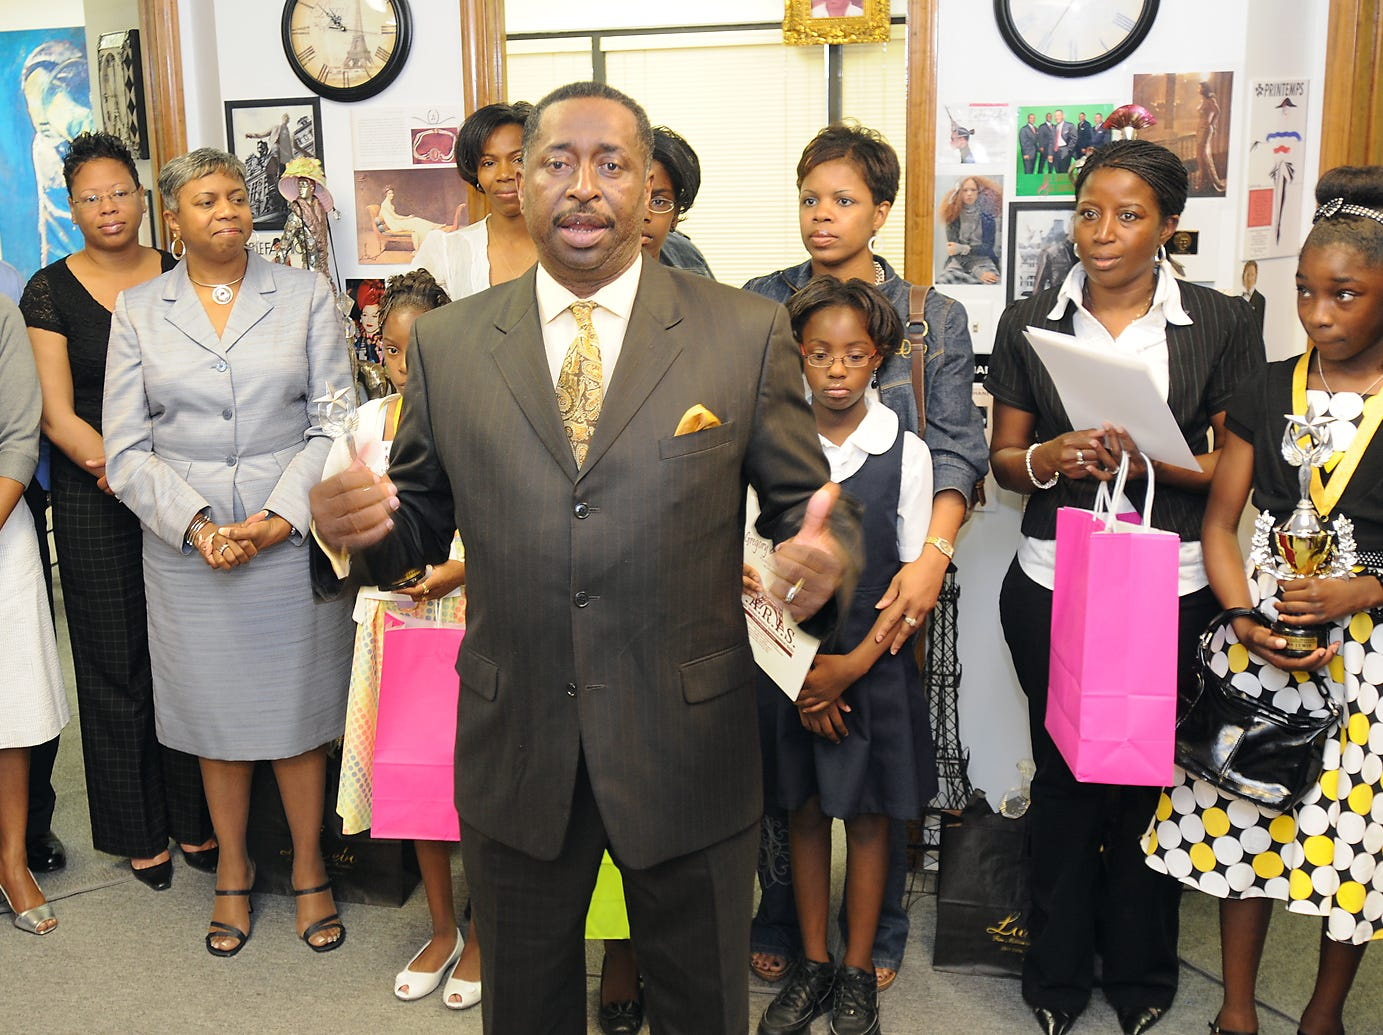 Greg Calhoun talks with students and their parents about the importance of family involvement in education  at Calhoun Enterprises, in Montgomery on Monday, April 28, 2008, at the grand opening of The Calhoun Paris Education Museum. Calhoun Enterprises joined forces with The Pilgrim Rest Missionary Baptist Church to honor and award students who were high scholastic academic achievers. In addition to receiving awards, the students were treated to a tour of The Calhoun Museum, which features replicas the Calhoun family's favorite paintings from The Louvre Museum in Paris. (Montgomery Advertiser, Jamie Martin)